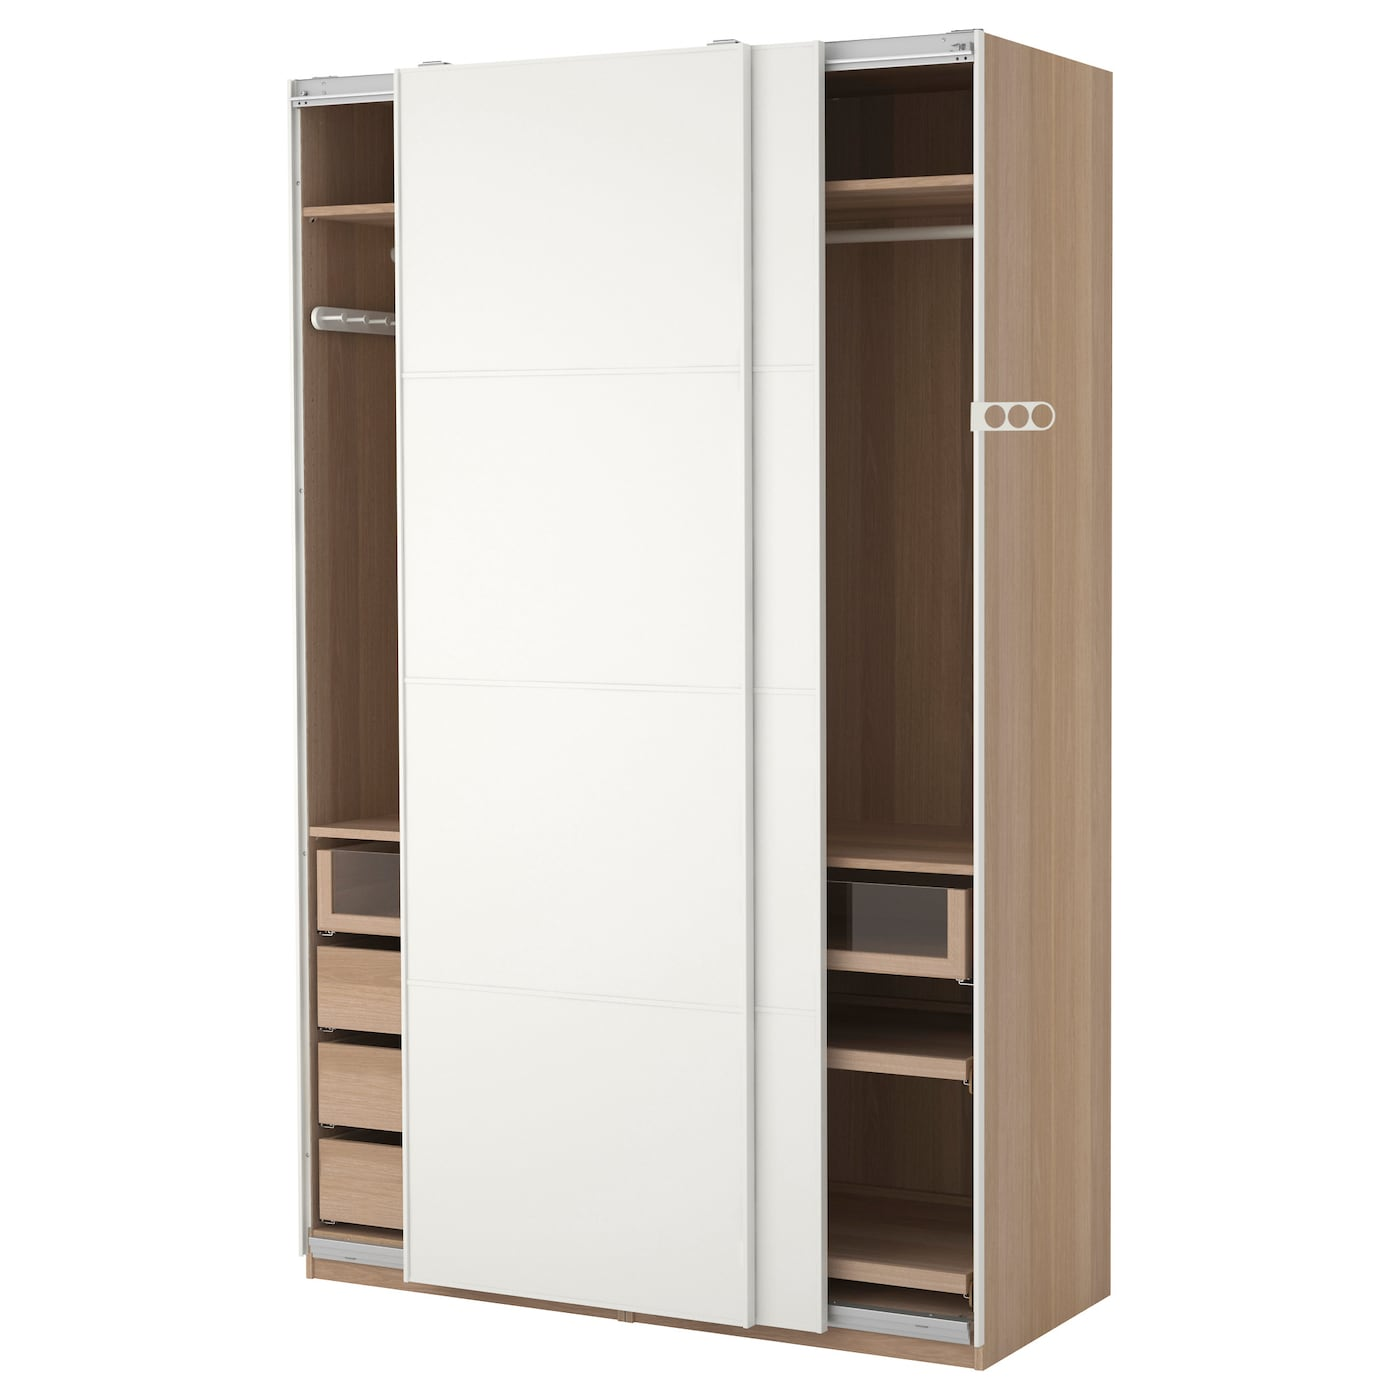 pax wardrobe white stained oak effect mehamn white 150 x 66 x 236 cm ikea. Black Bedroom Furniture Sets. Home Design Ideas